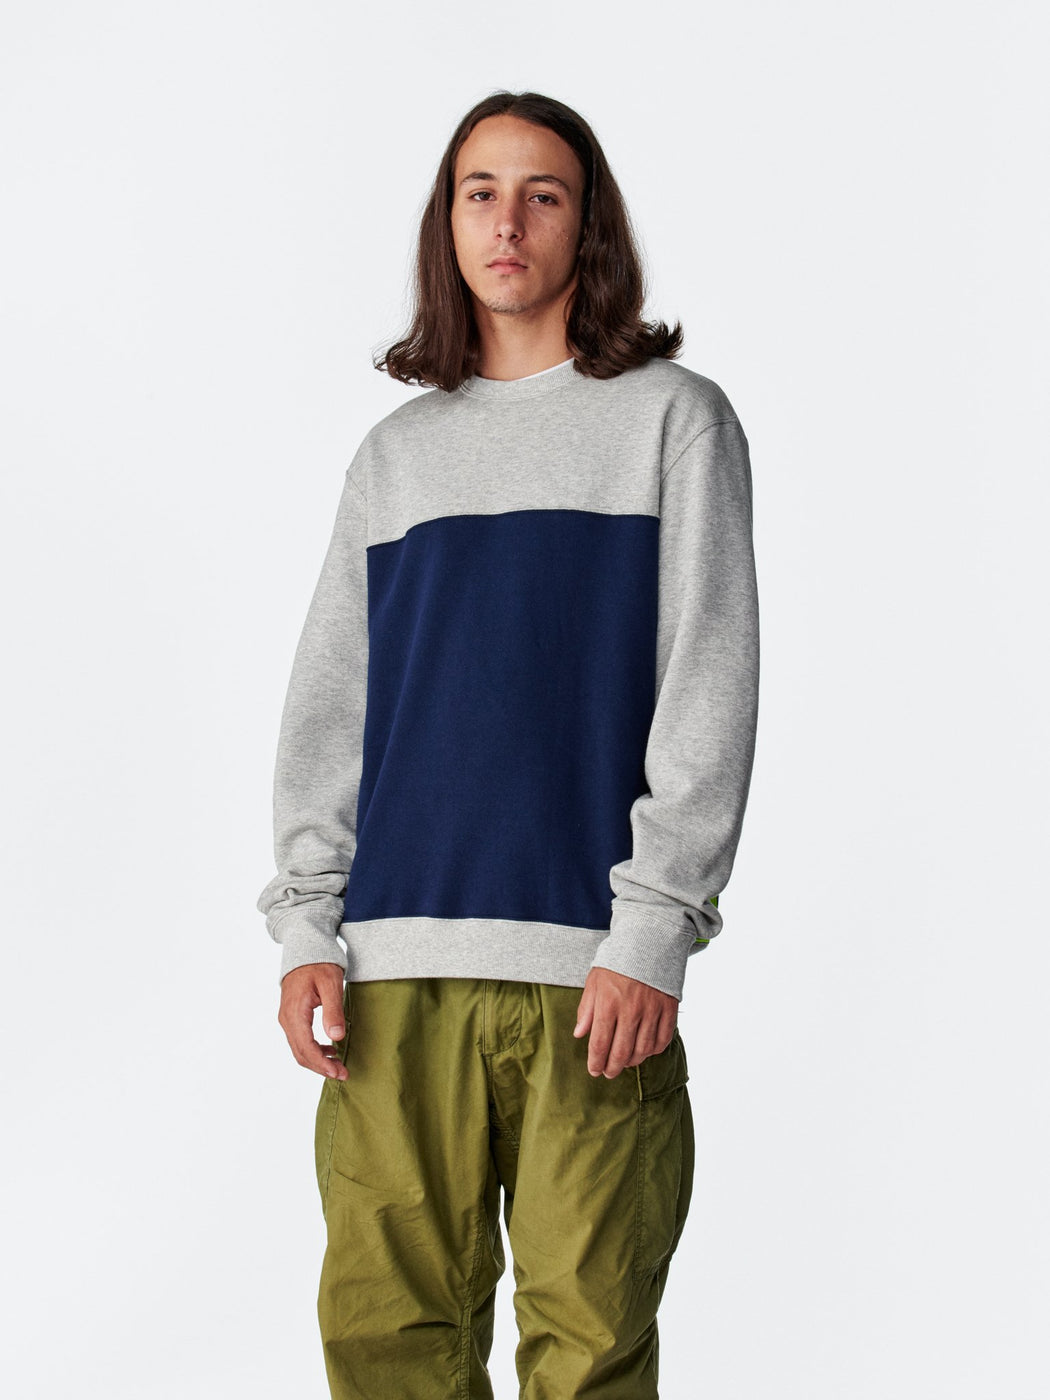 ALOYE Color Block Sweatshirt Heather Gray-Navy-Yellow